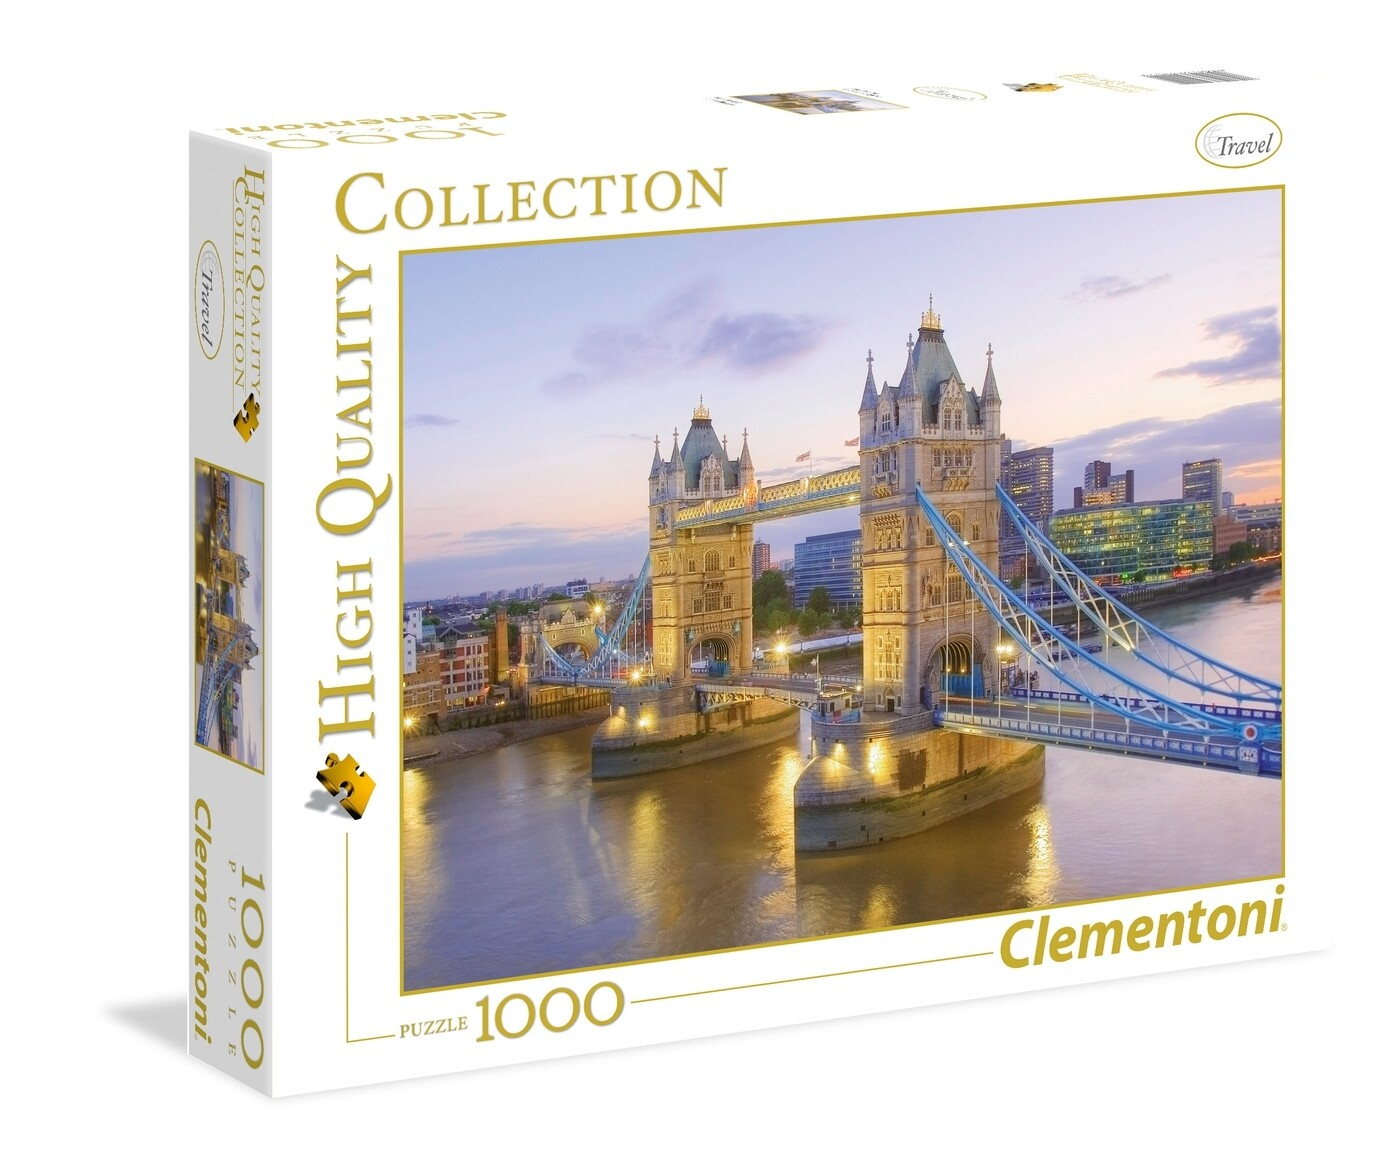 PUZZLE 1000 HQ Tower Bridge - CLEMENTONI